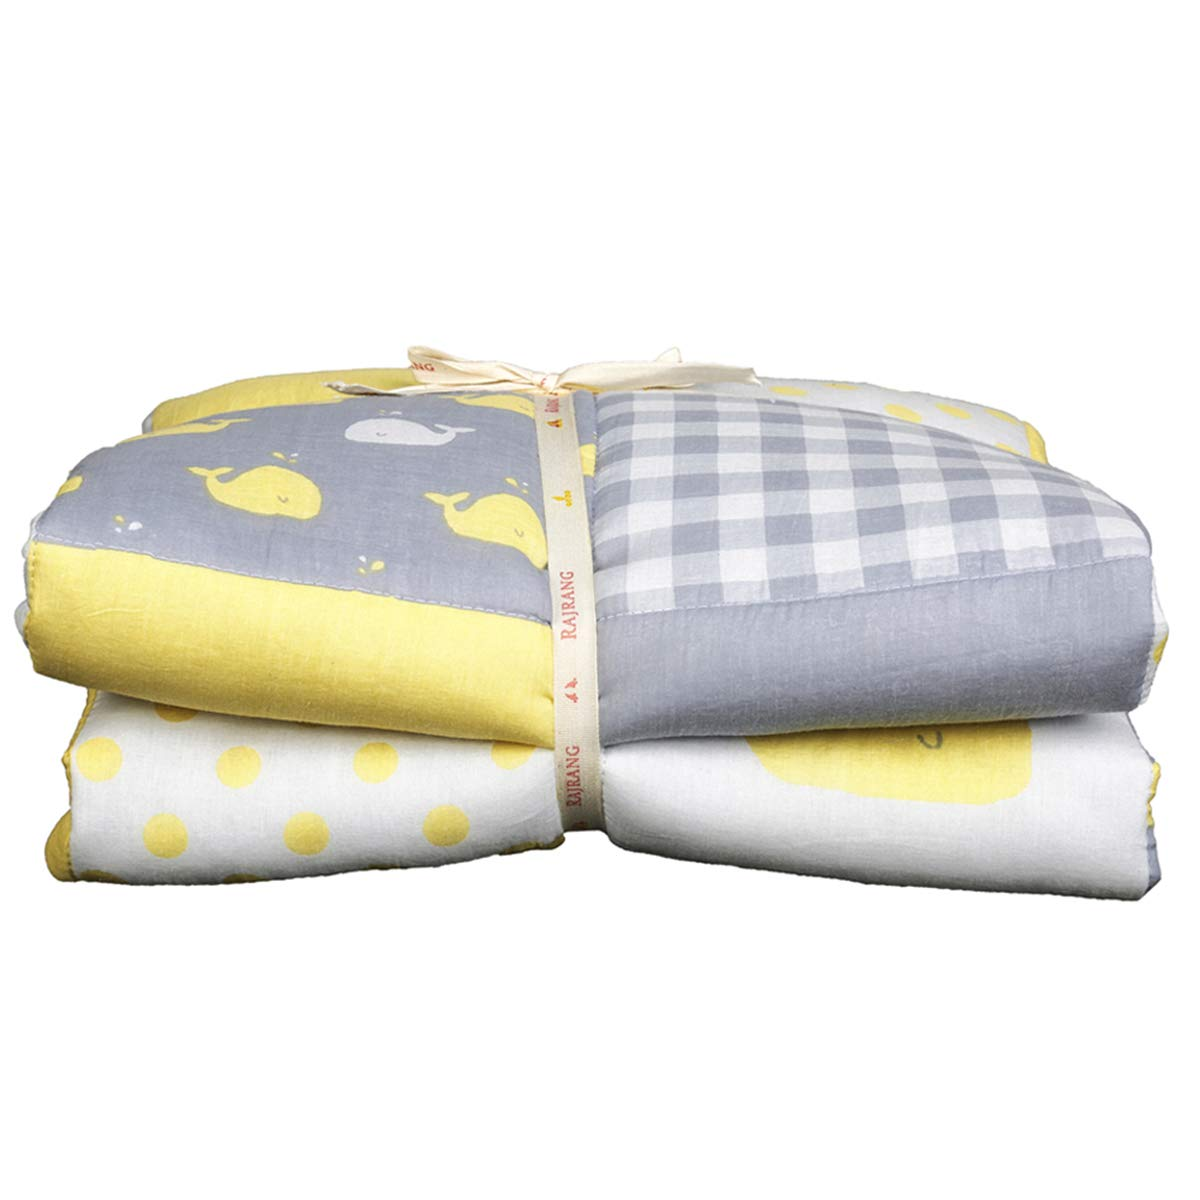 Yellow and Grey Baby Blanket Whale Print Toddler Quilt for Newborn Kids Cotton Soft Crib Comforter